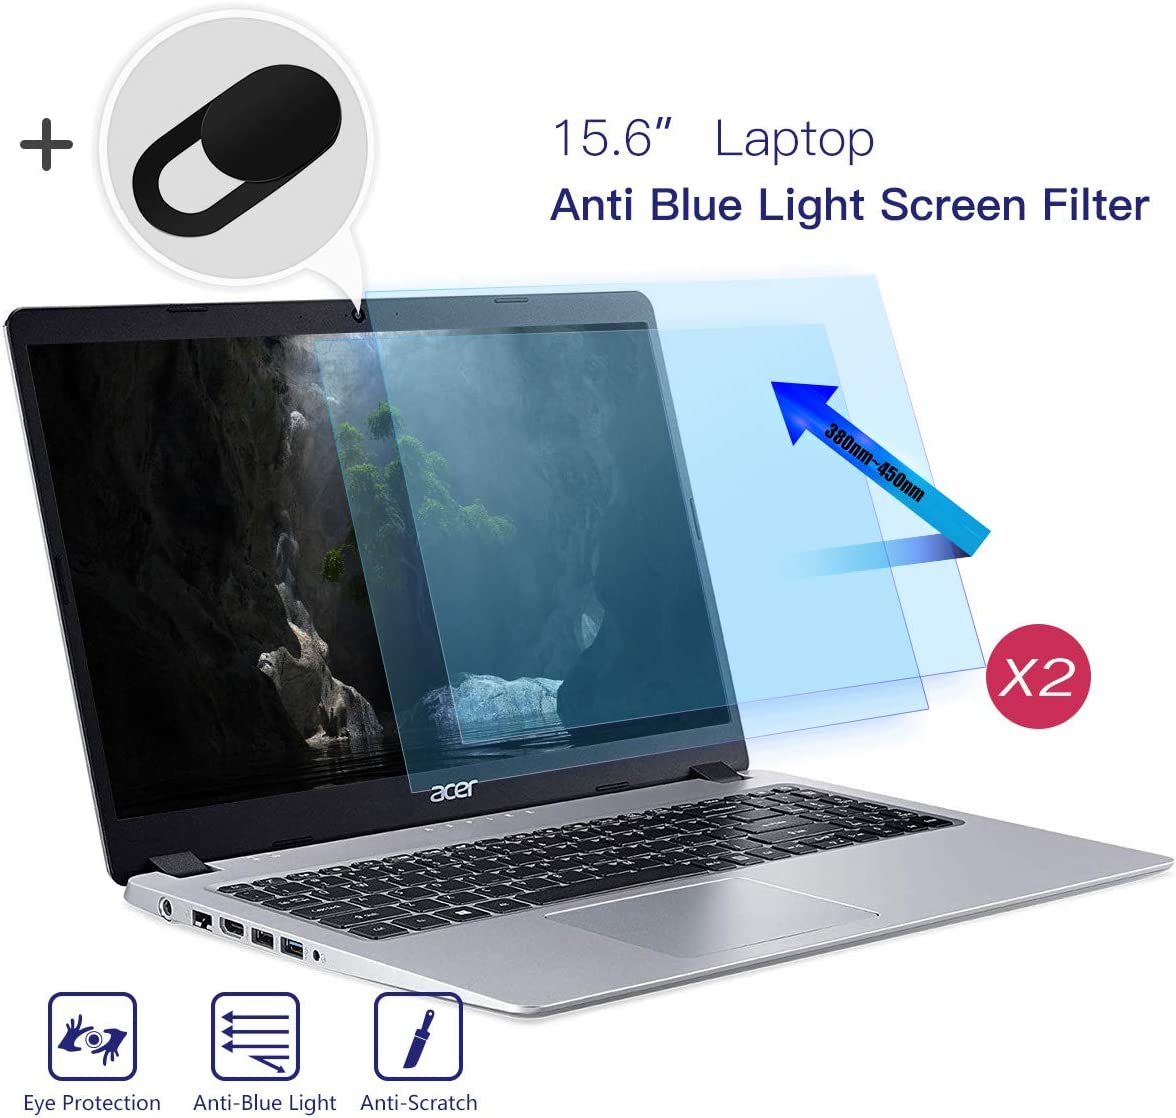 2 Pack 15.6 Inch Laptop Screen Protector, Anti Blue Light Anti Glare Eye Protection Filter Blue Light Blocking Screen Protector for All 15.6 Inch HP/Dell/Acer/Asus/Lenovo Laptop with Webcam Cover